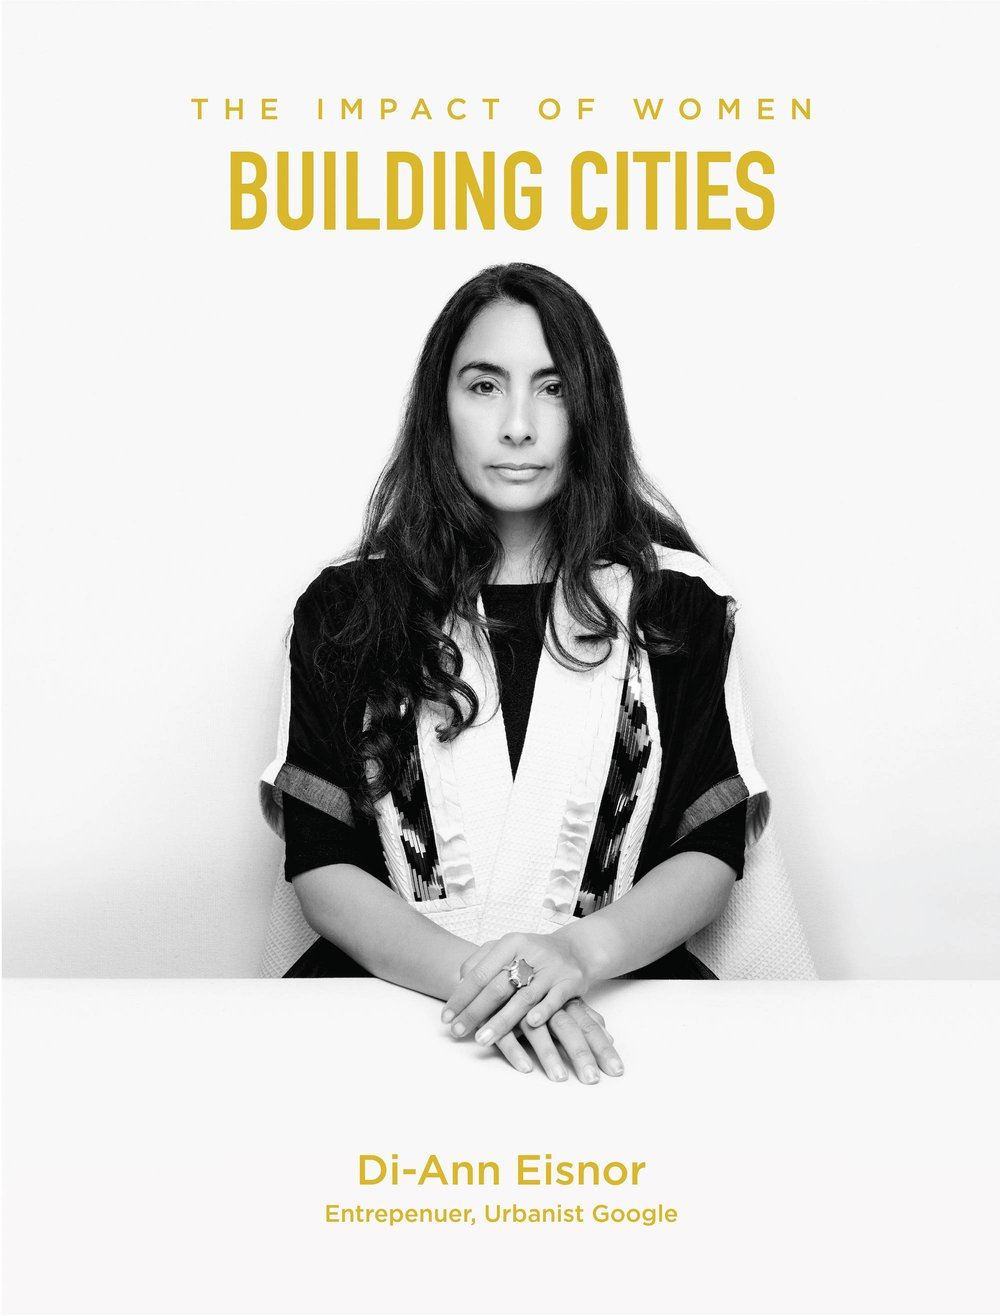 Di-Ann Eisnor is Building Cities